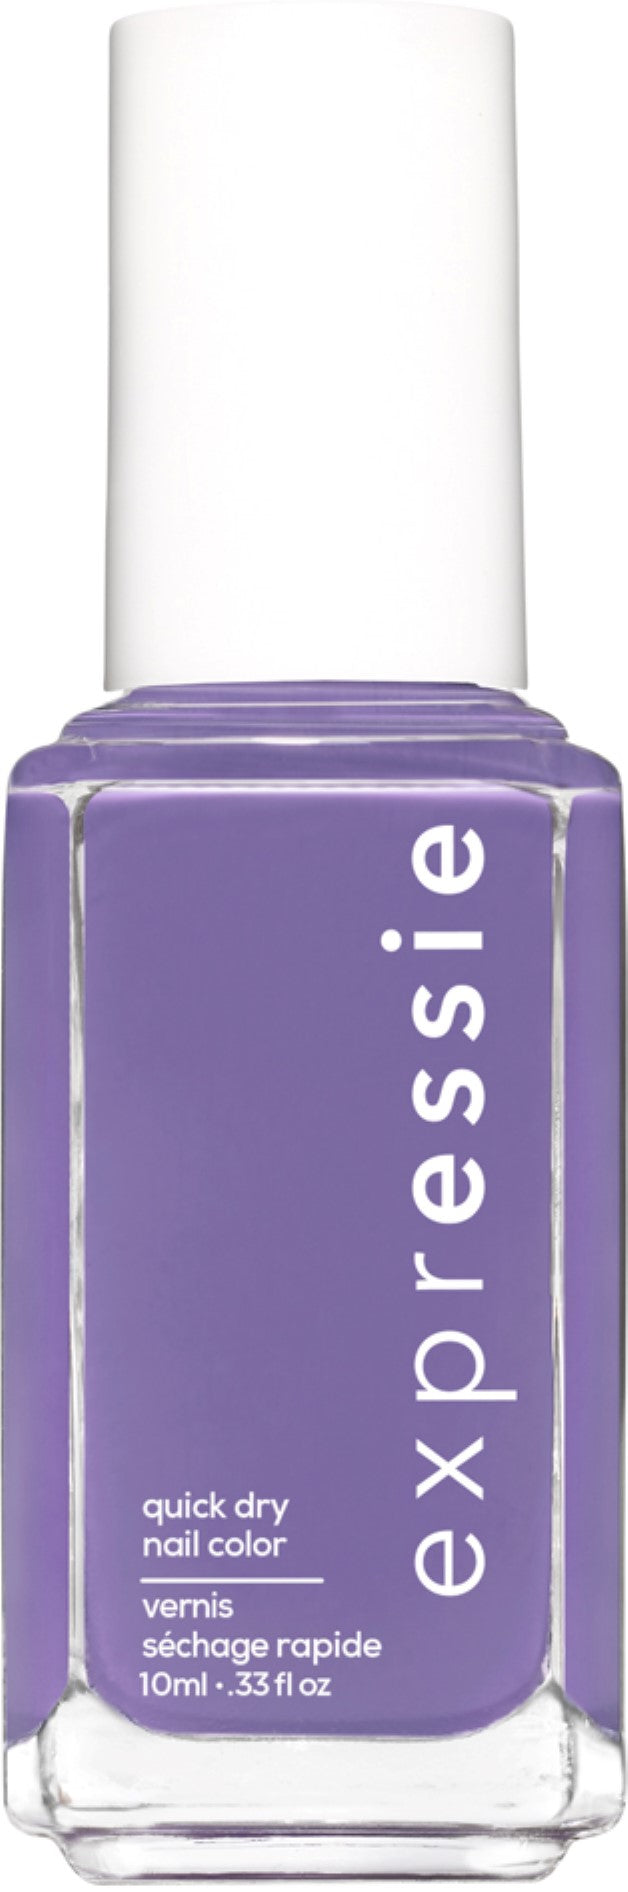 expressie quick-dry nail polish, grape purple nail polish, IRL, 0.33 oz